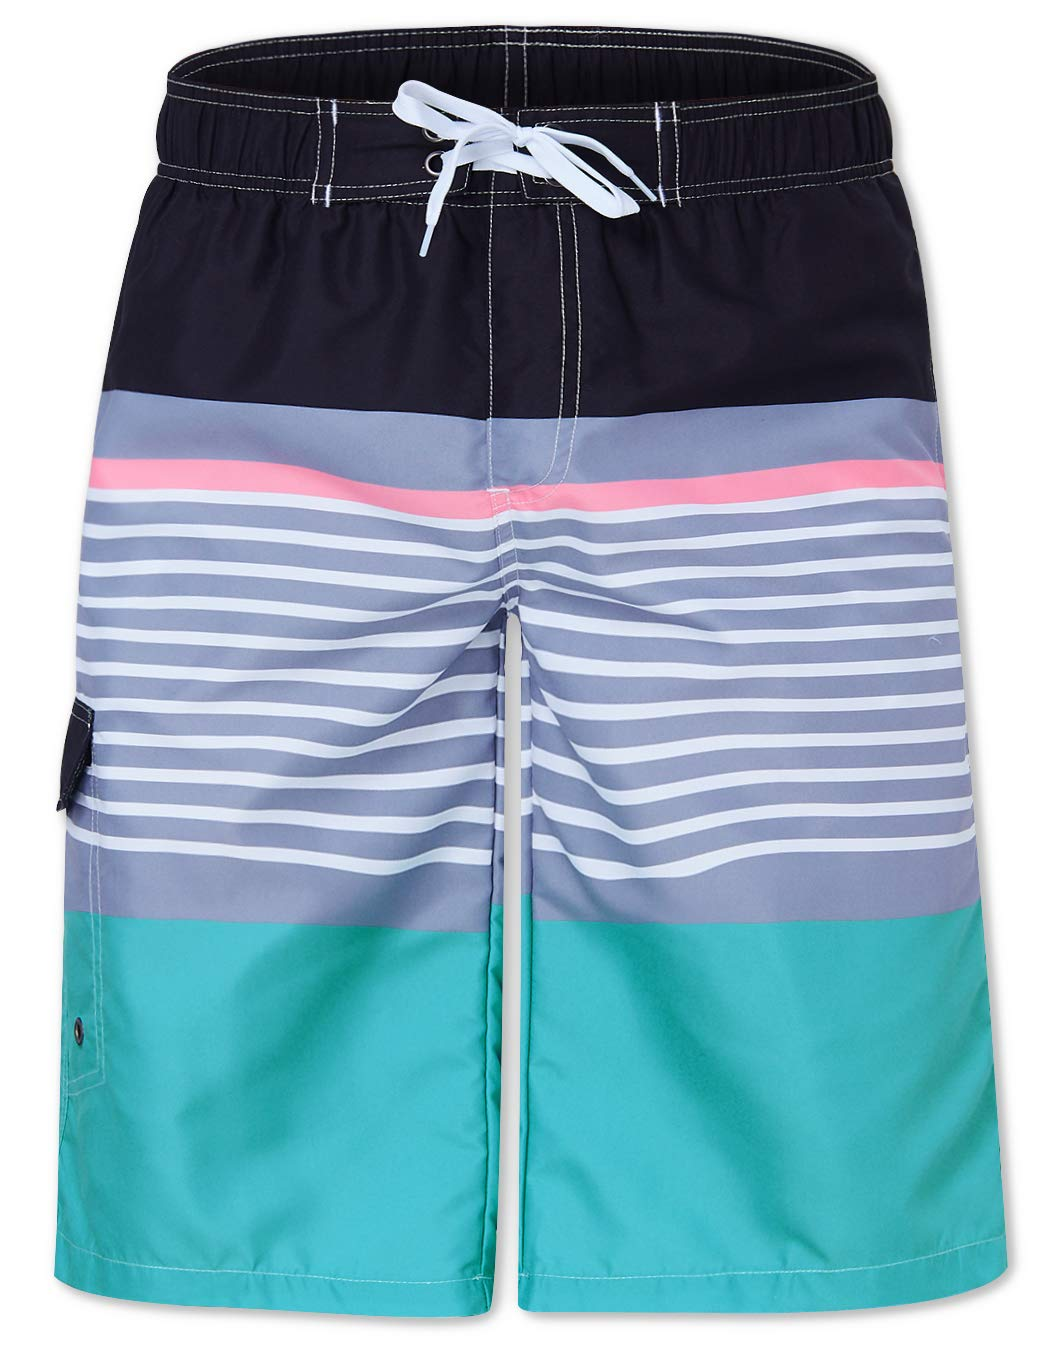 Big and Tall Adult Over Size Mens Boys Swimming Trunk Quick Dry Board Shorts with Three Pockets Striped Colorful Lenght at The Kee Athletic Pants for Daily wear XL